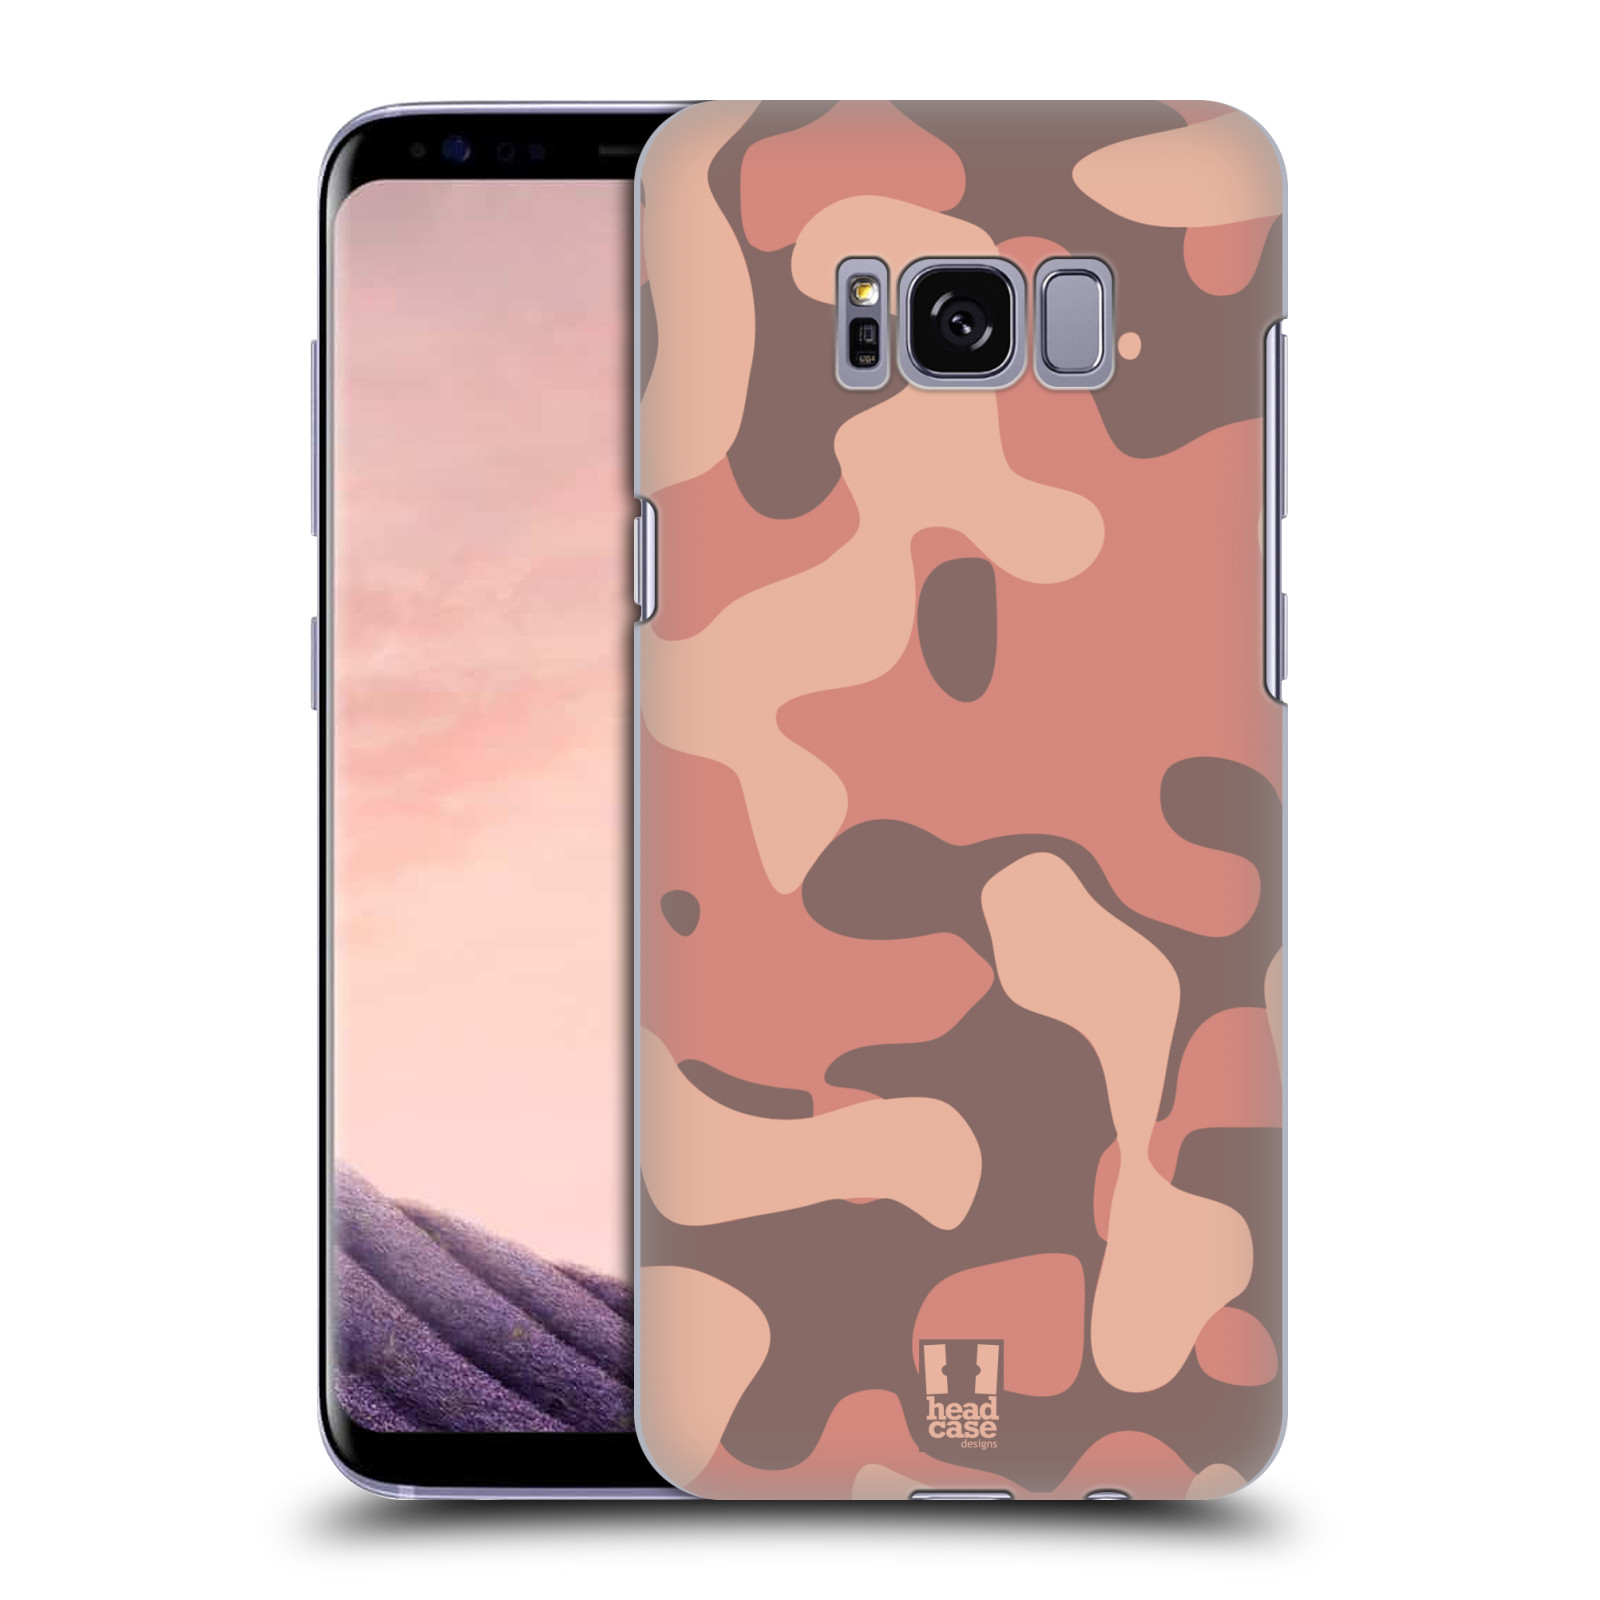 HEAD-CASE-DESIGNS-SOFT-CAMOUFLAGE-HARD-BACK-CASE-FOR-SAMSUNG-GALAXY-S8